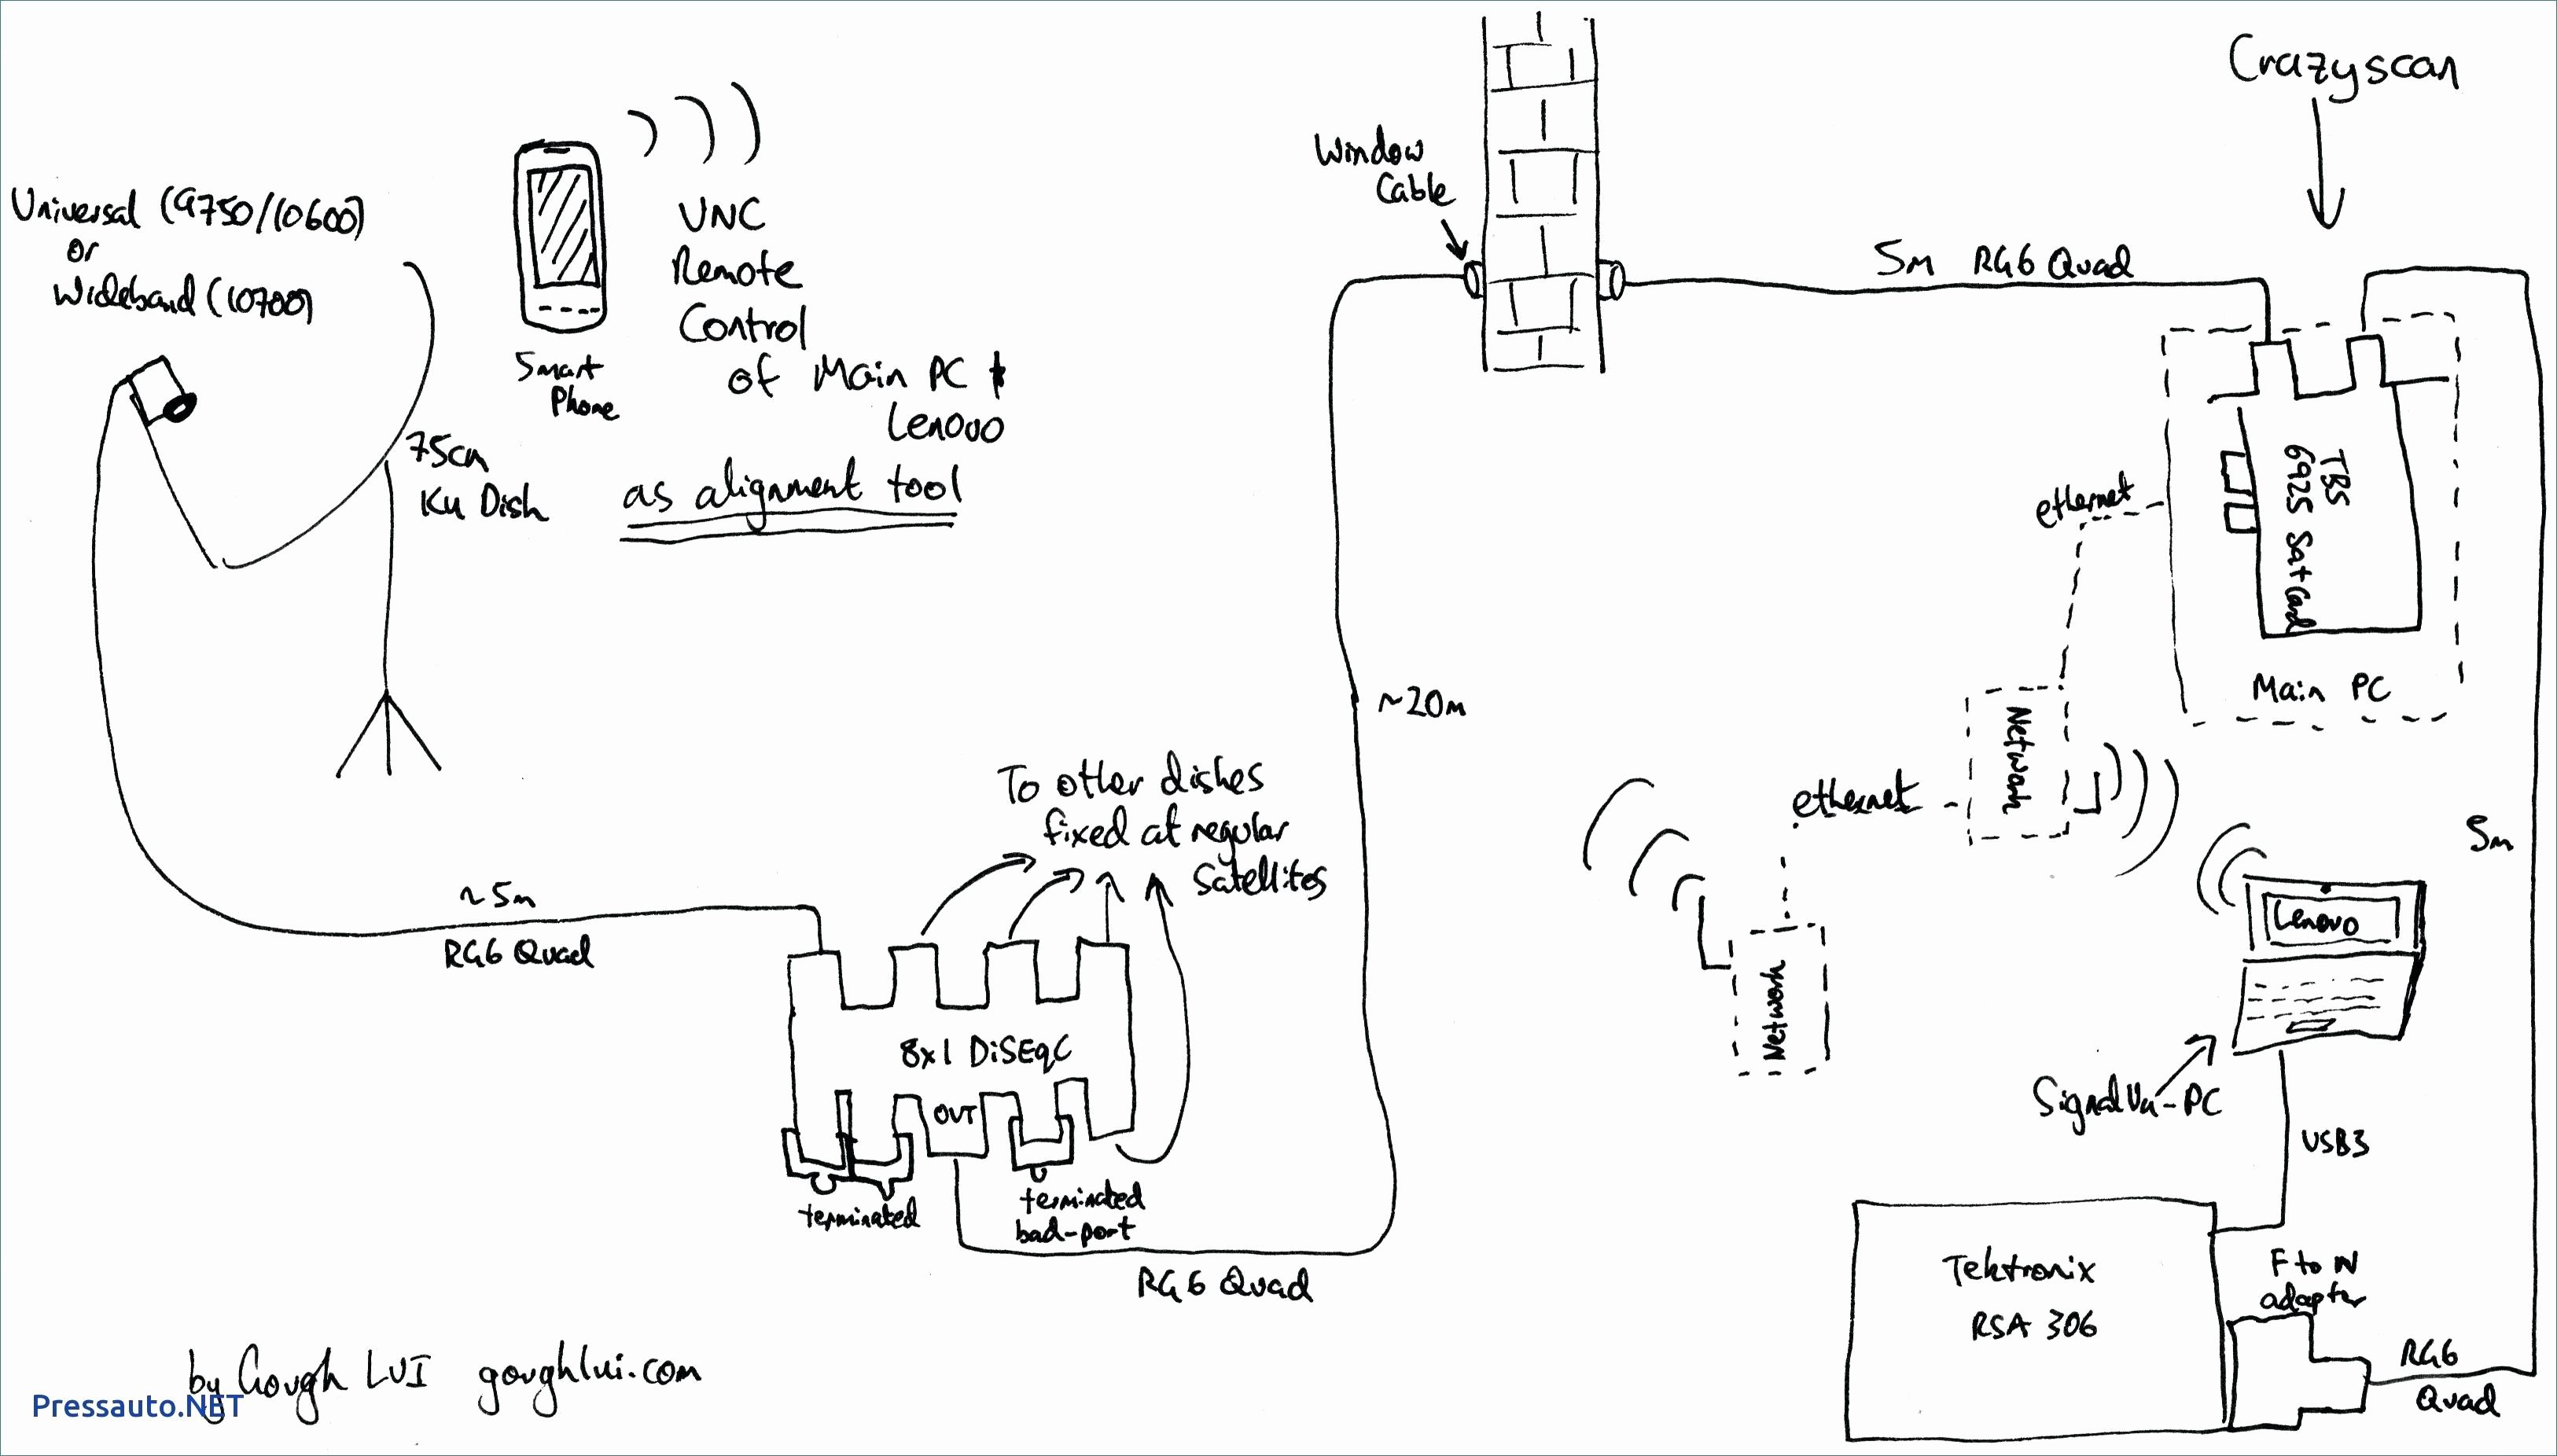 1988 Fleetwood Bounder 460 Engine Starter And Solenoid Wiring Diagram from 2020cadillac.com